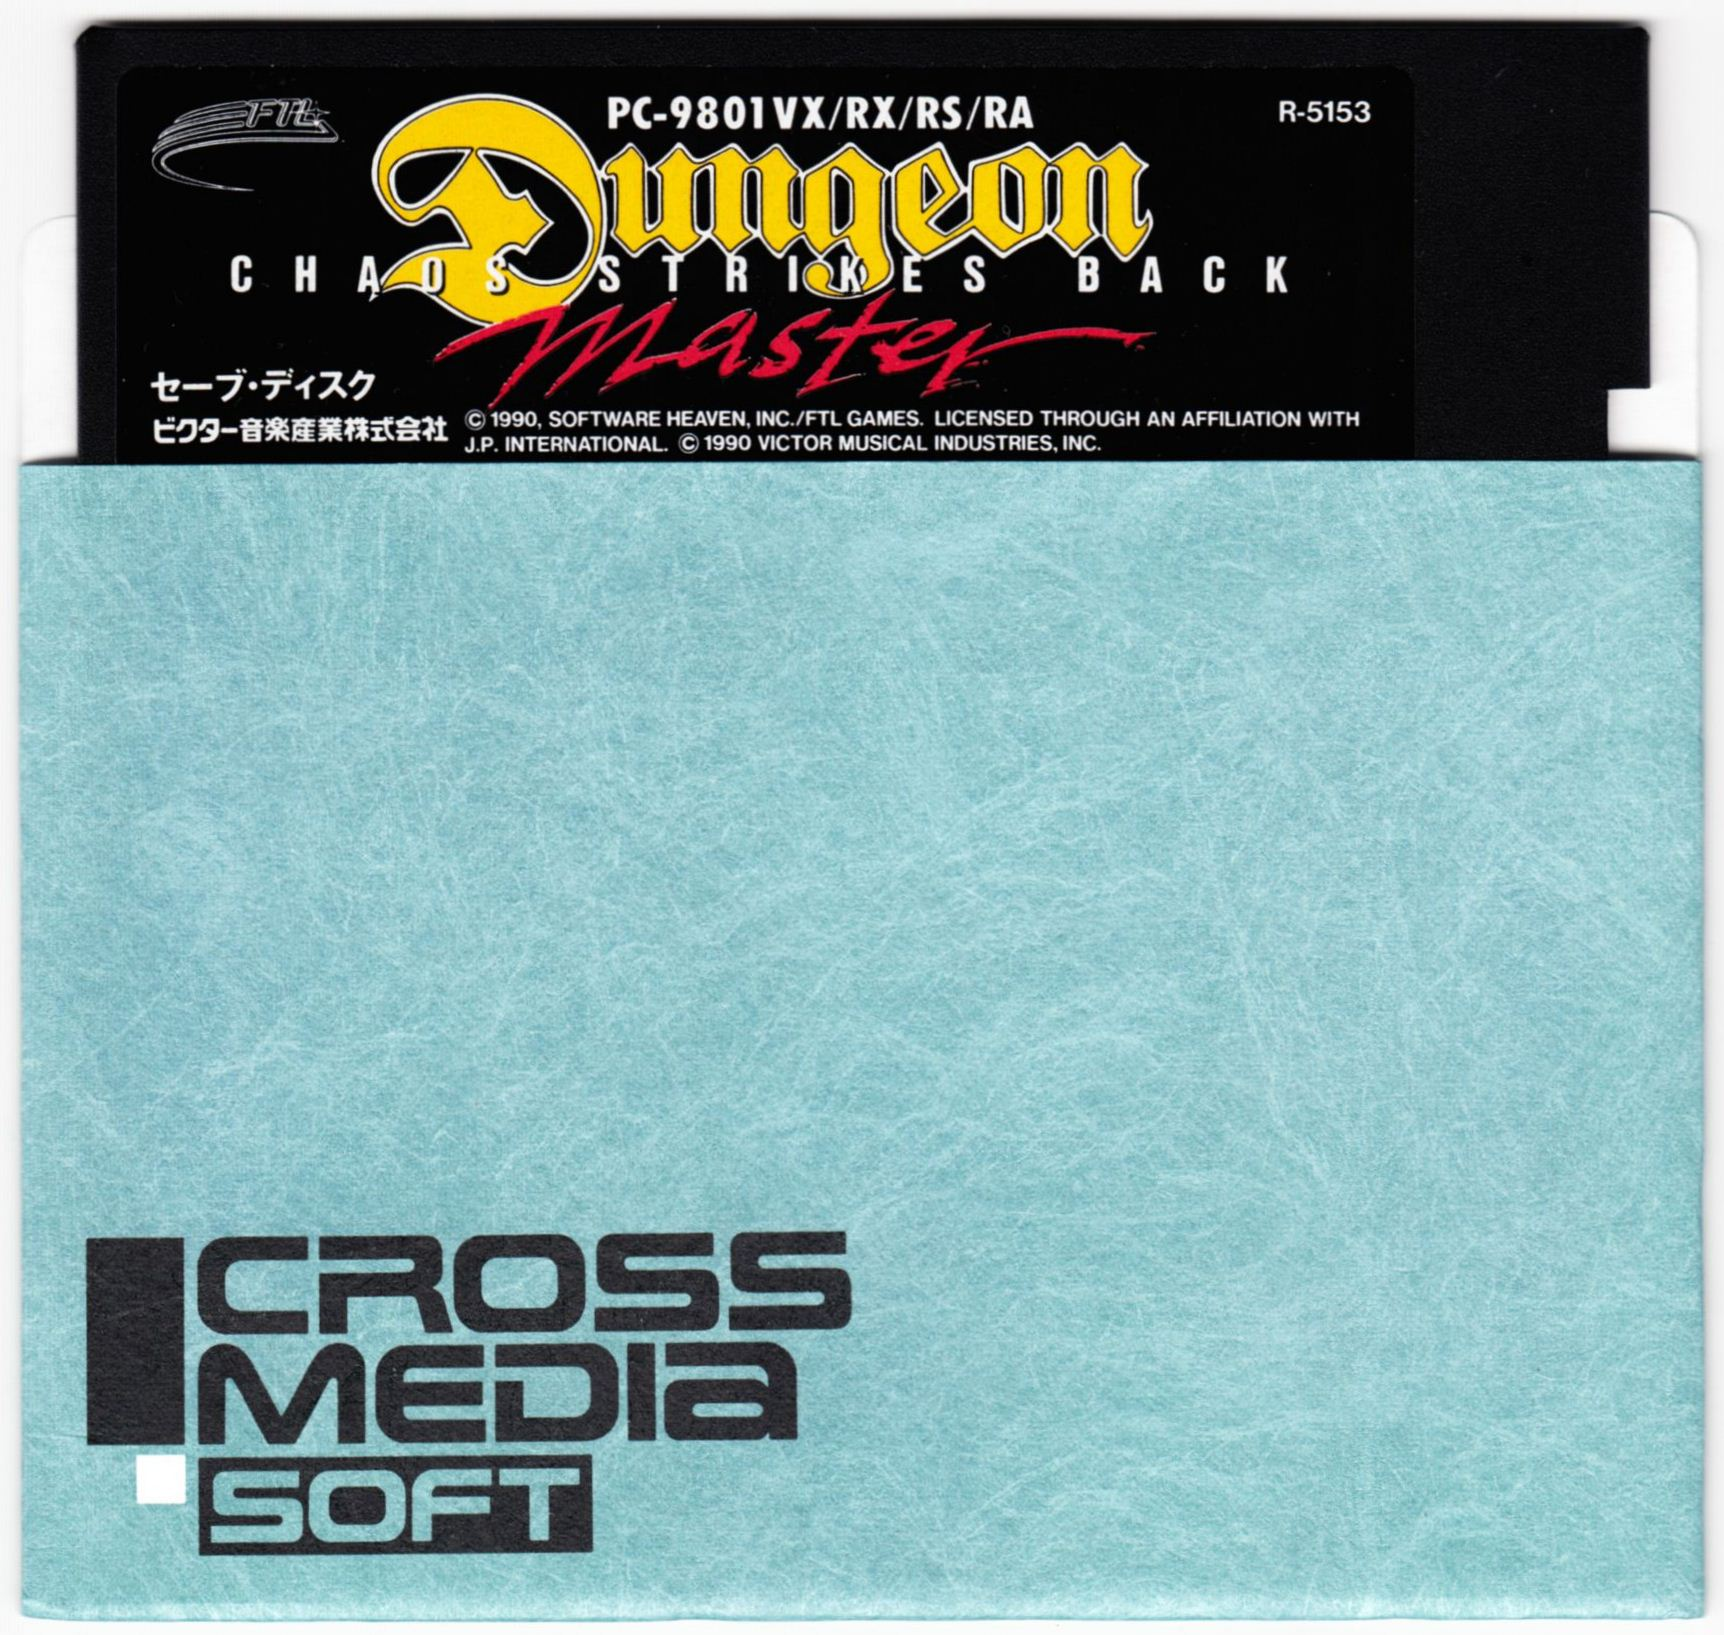 Game - Chaos Strikes Back - JP - PC-9801 - 5.25-inch - Save Disk In Sleeve - Front - Scan